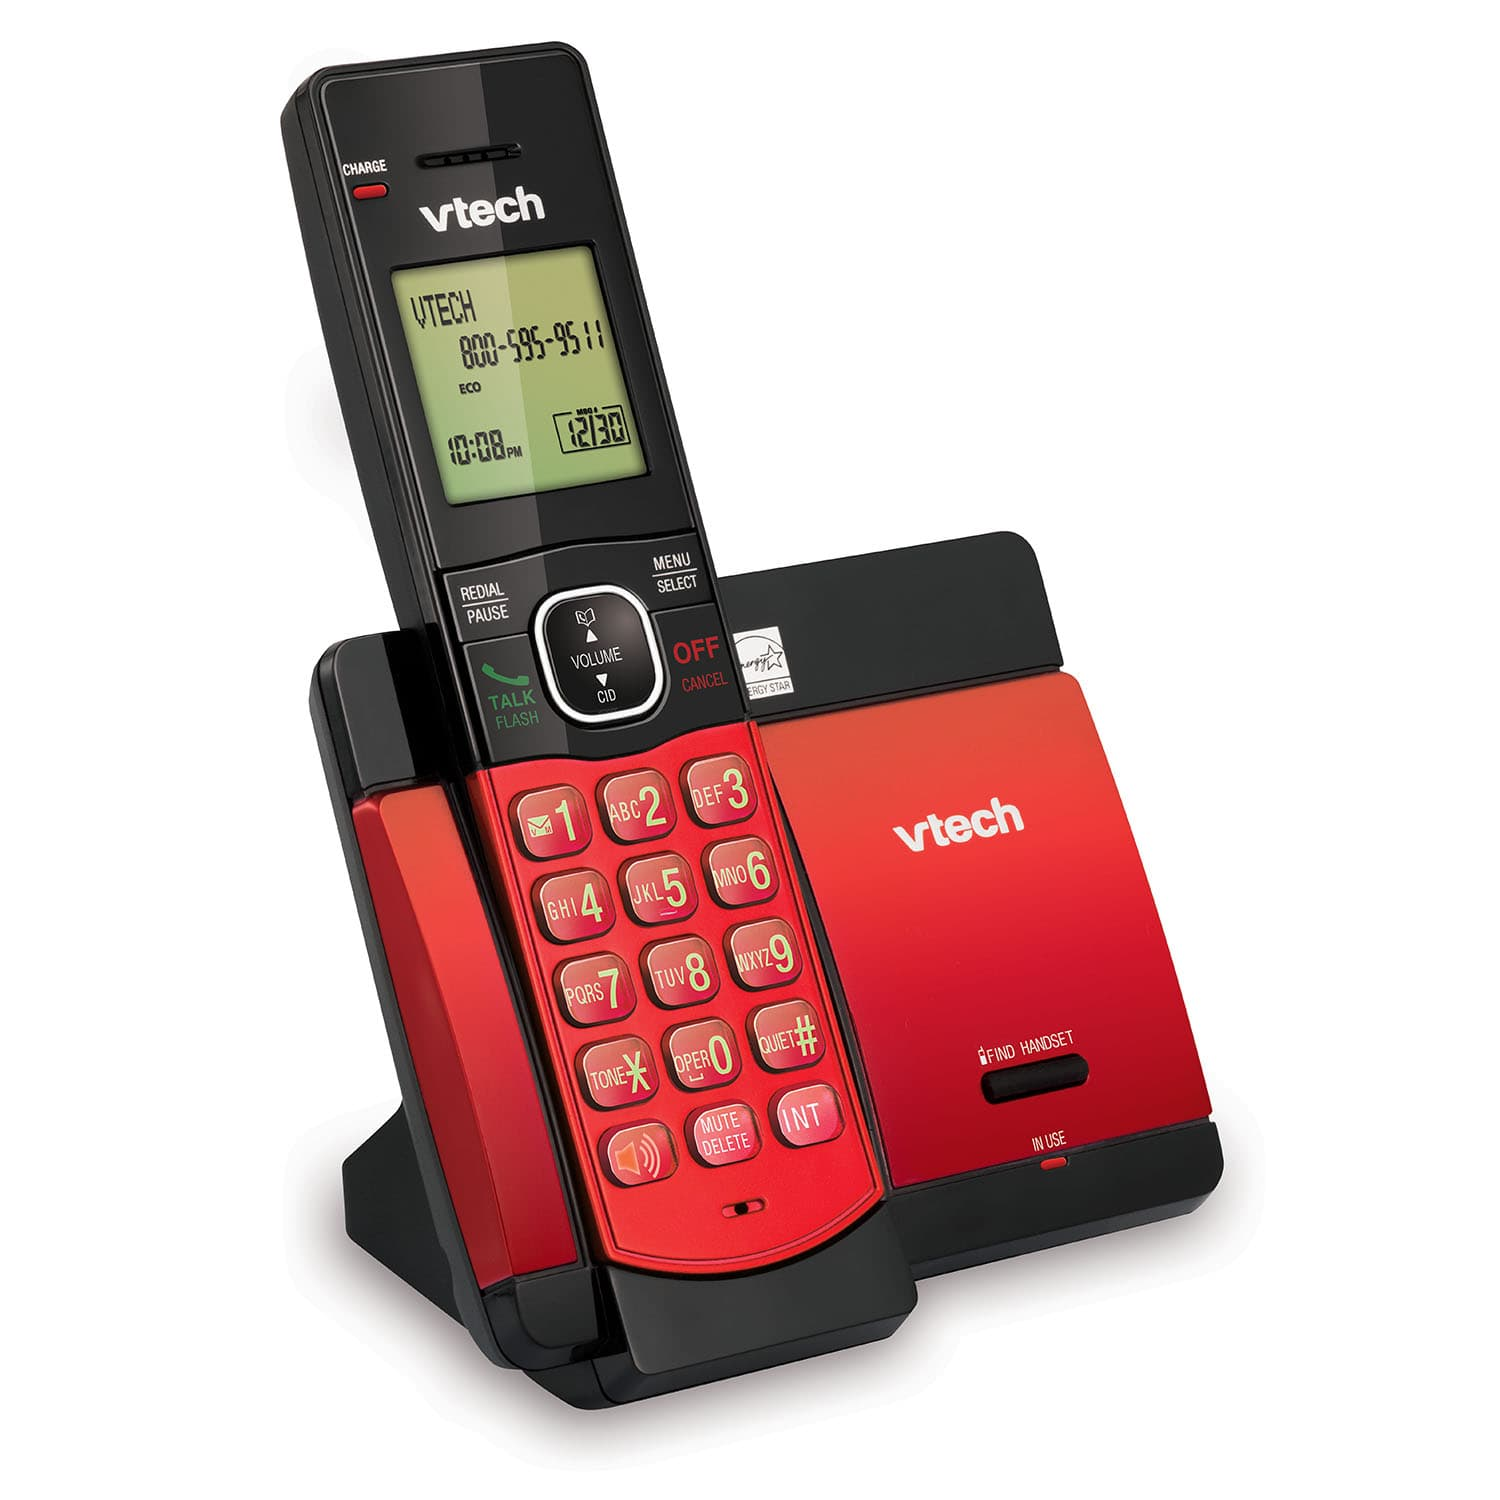 Red Cordless Phone with Caller ID/Call Waiting